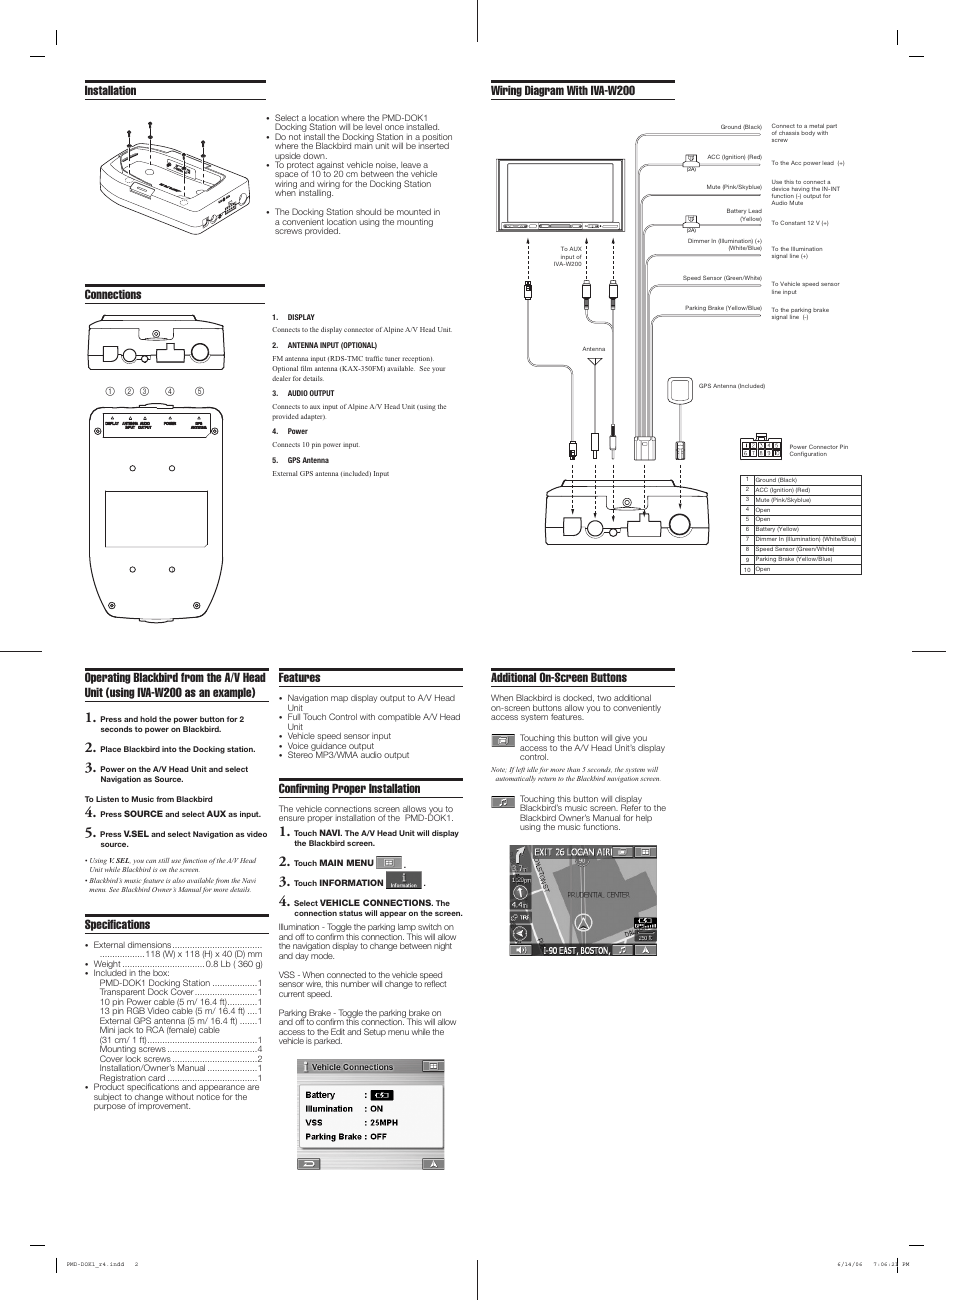 medium resolution of connections wiring diagram with iva w200 specifi cations installation additional on